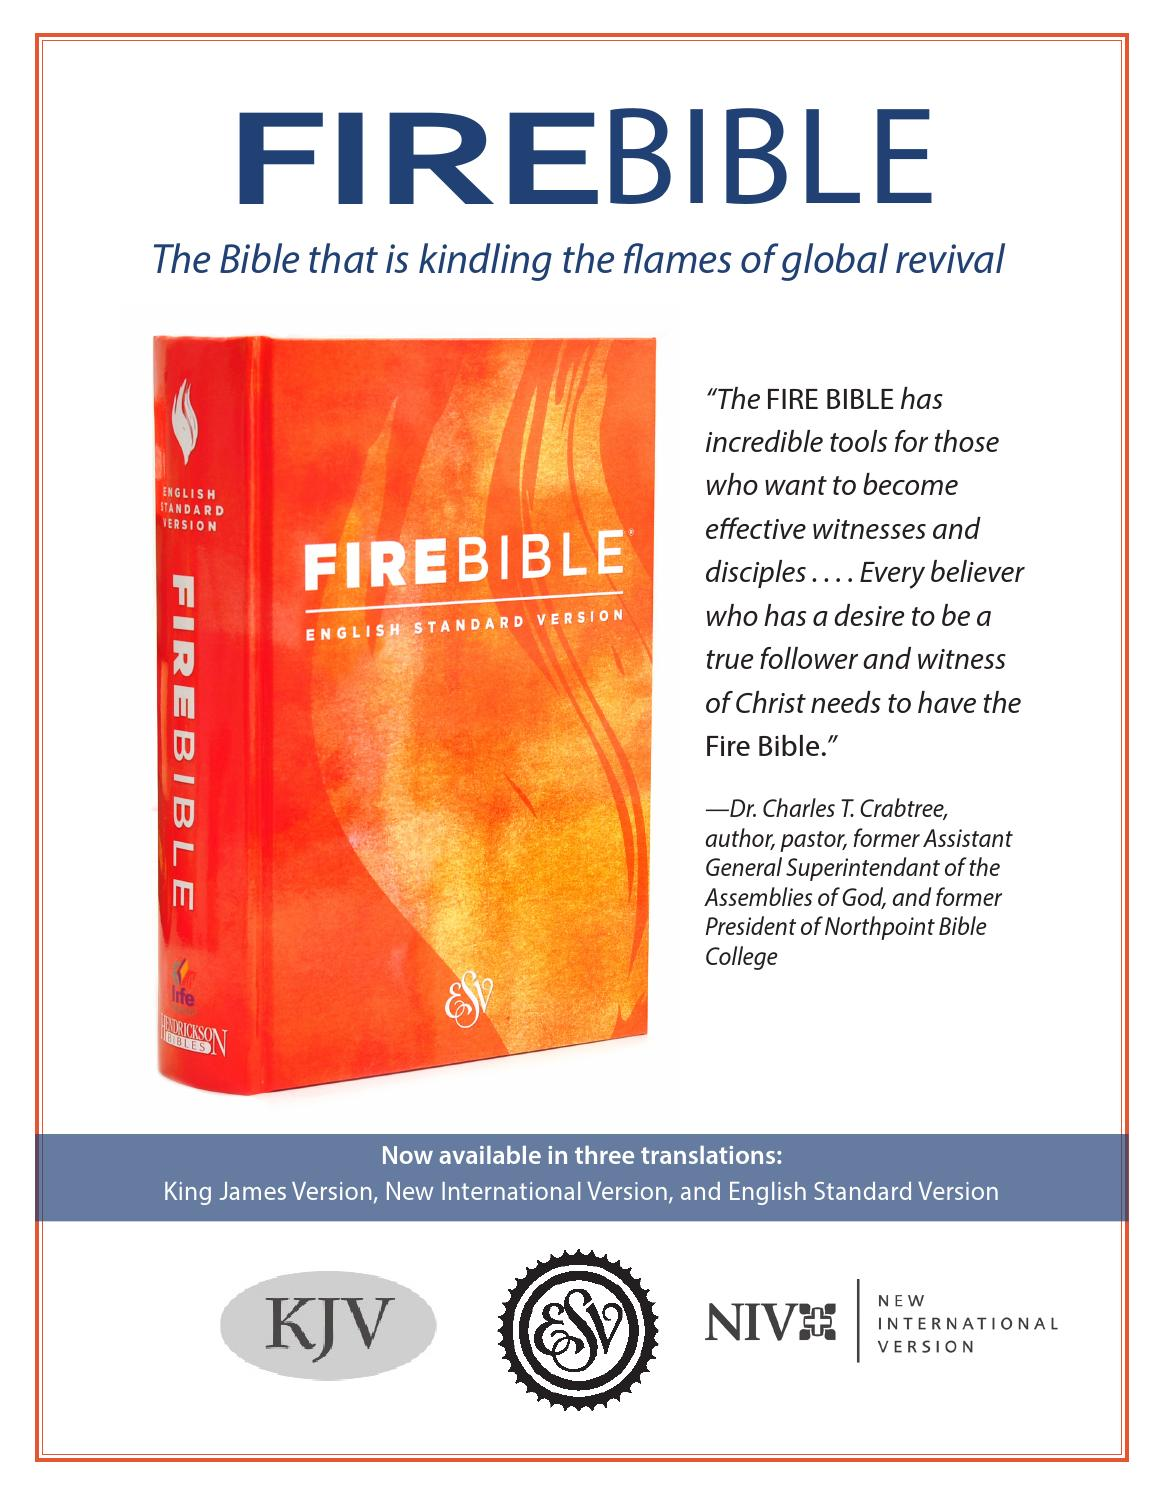 Fire Bible Flyer 2014 by Hendrickson Publishers - issuu